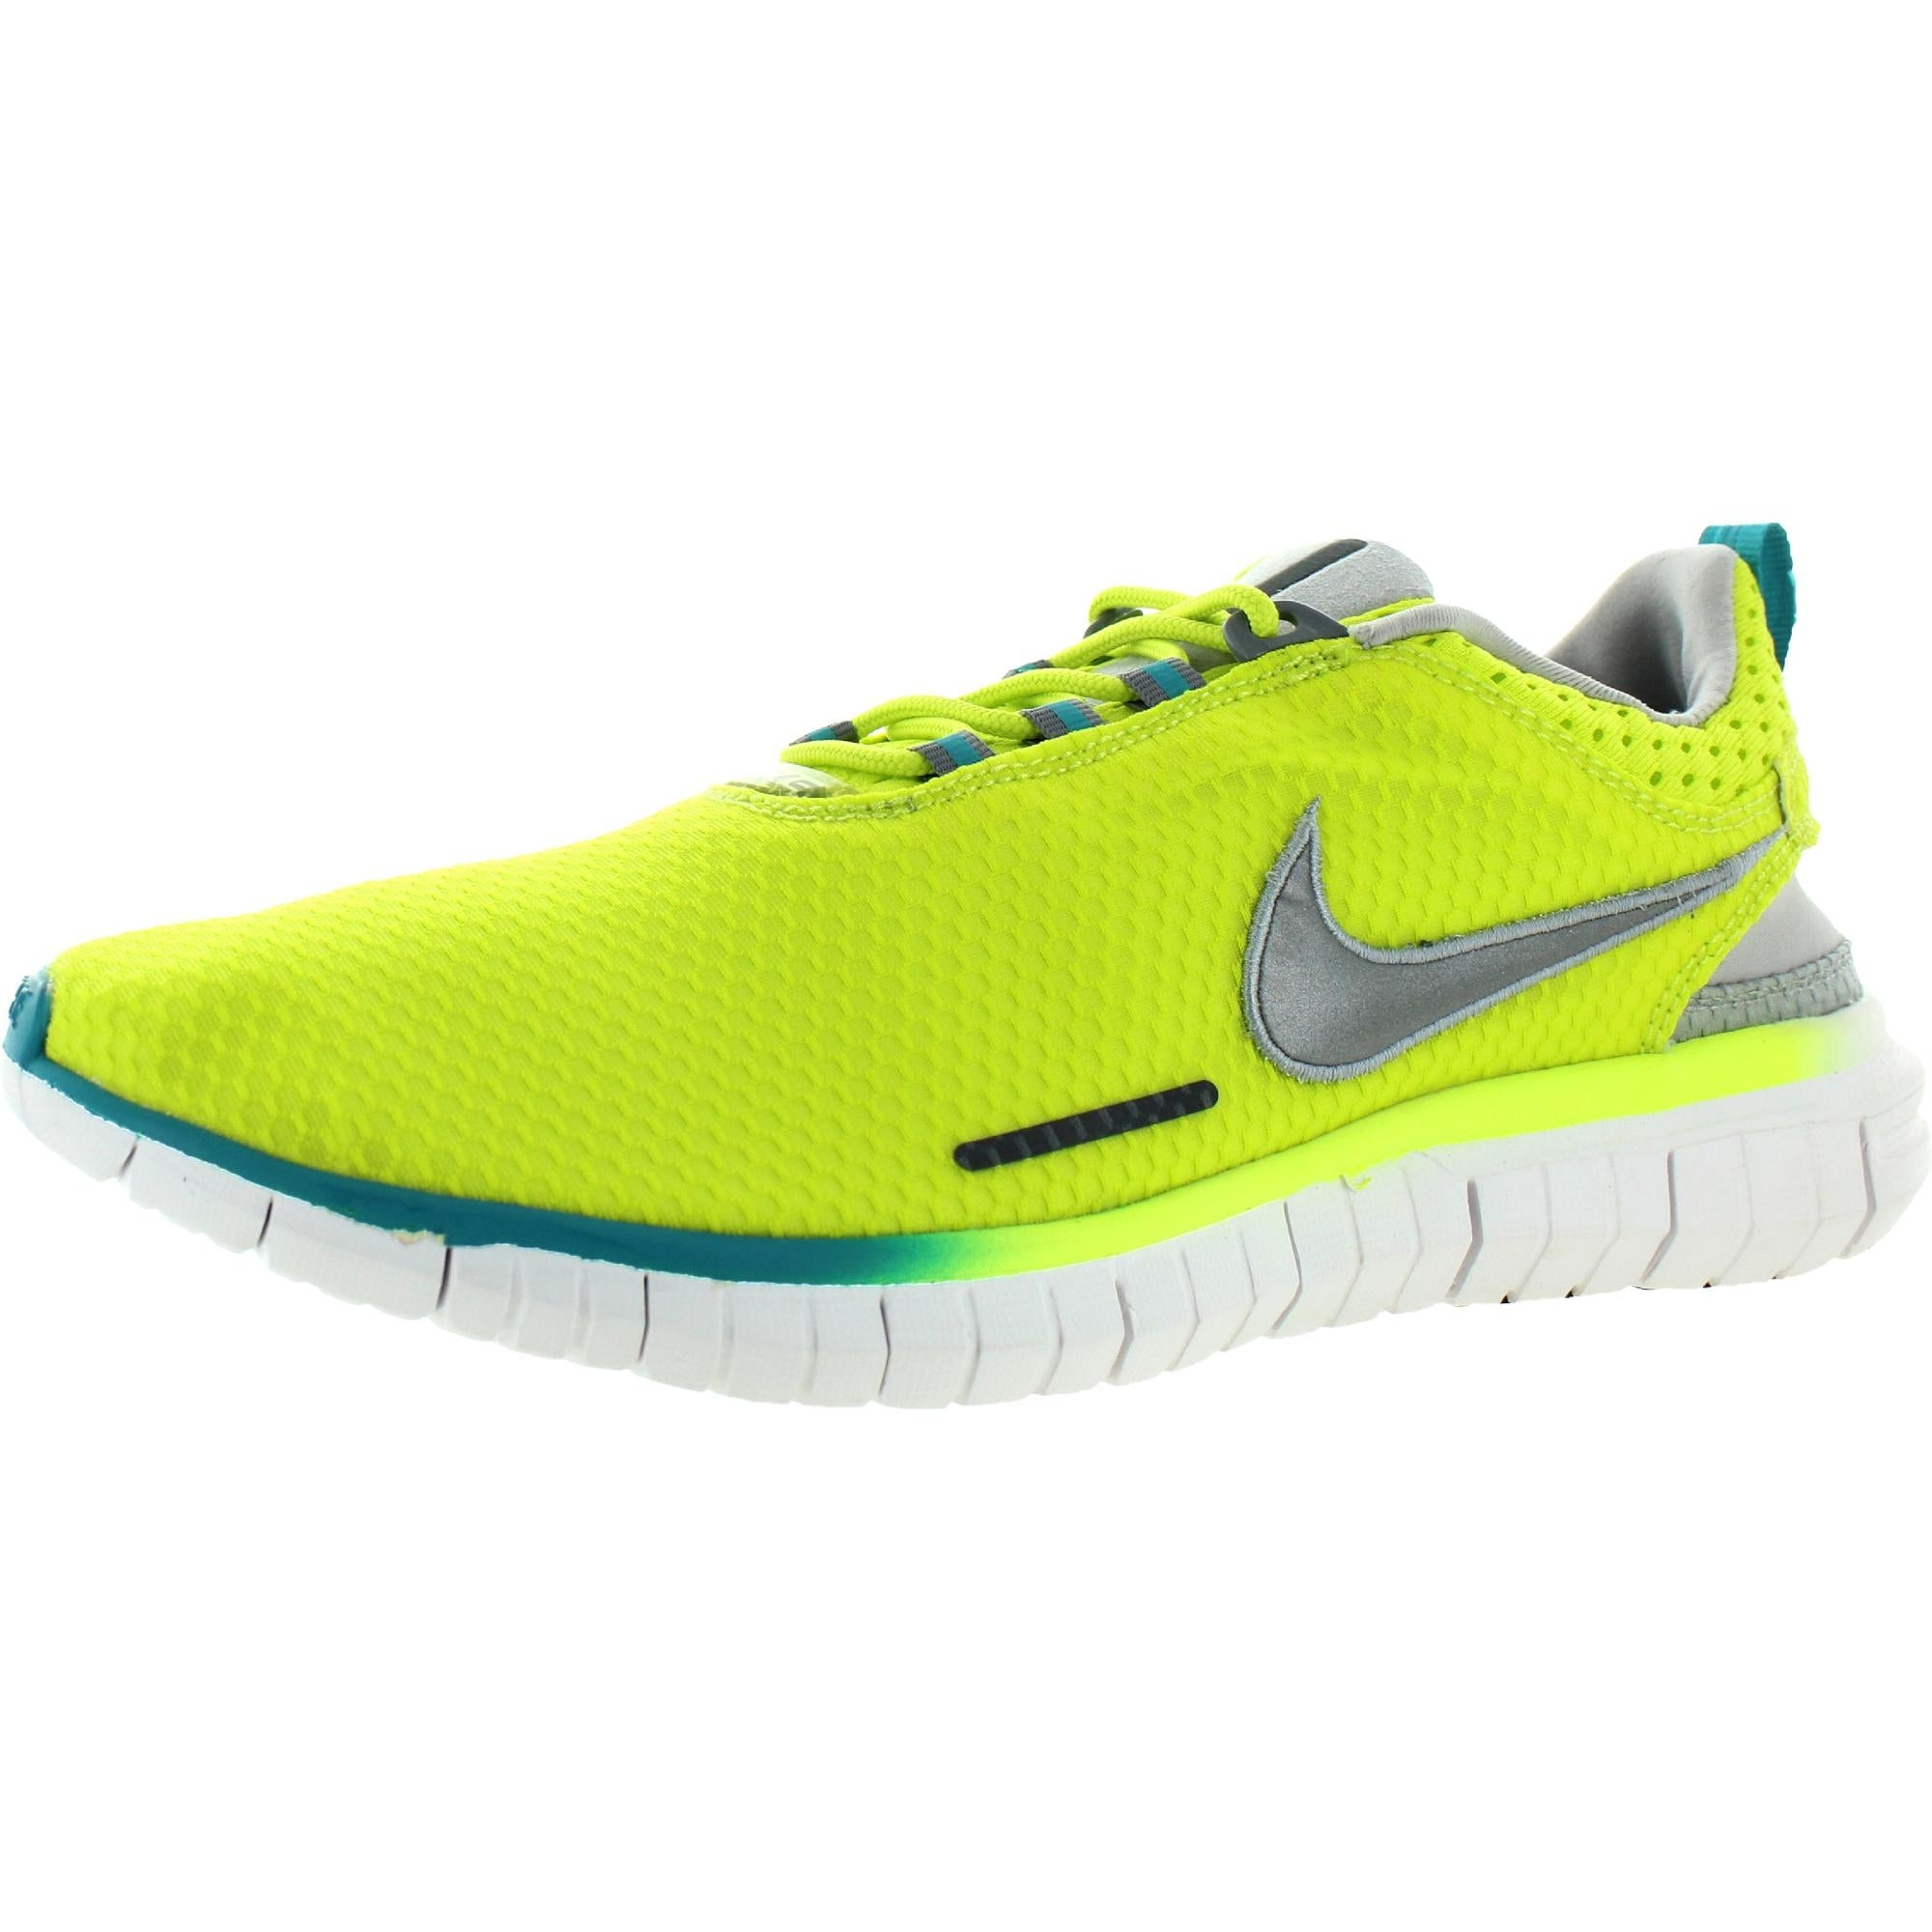 nike free og 14 br Shop Nike Mens Nike Free OG '14 BR Running Shoes Breathable ...